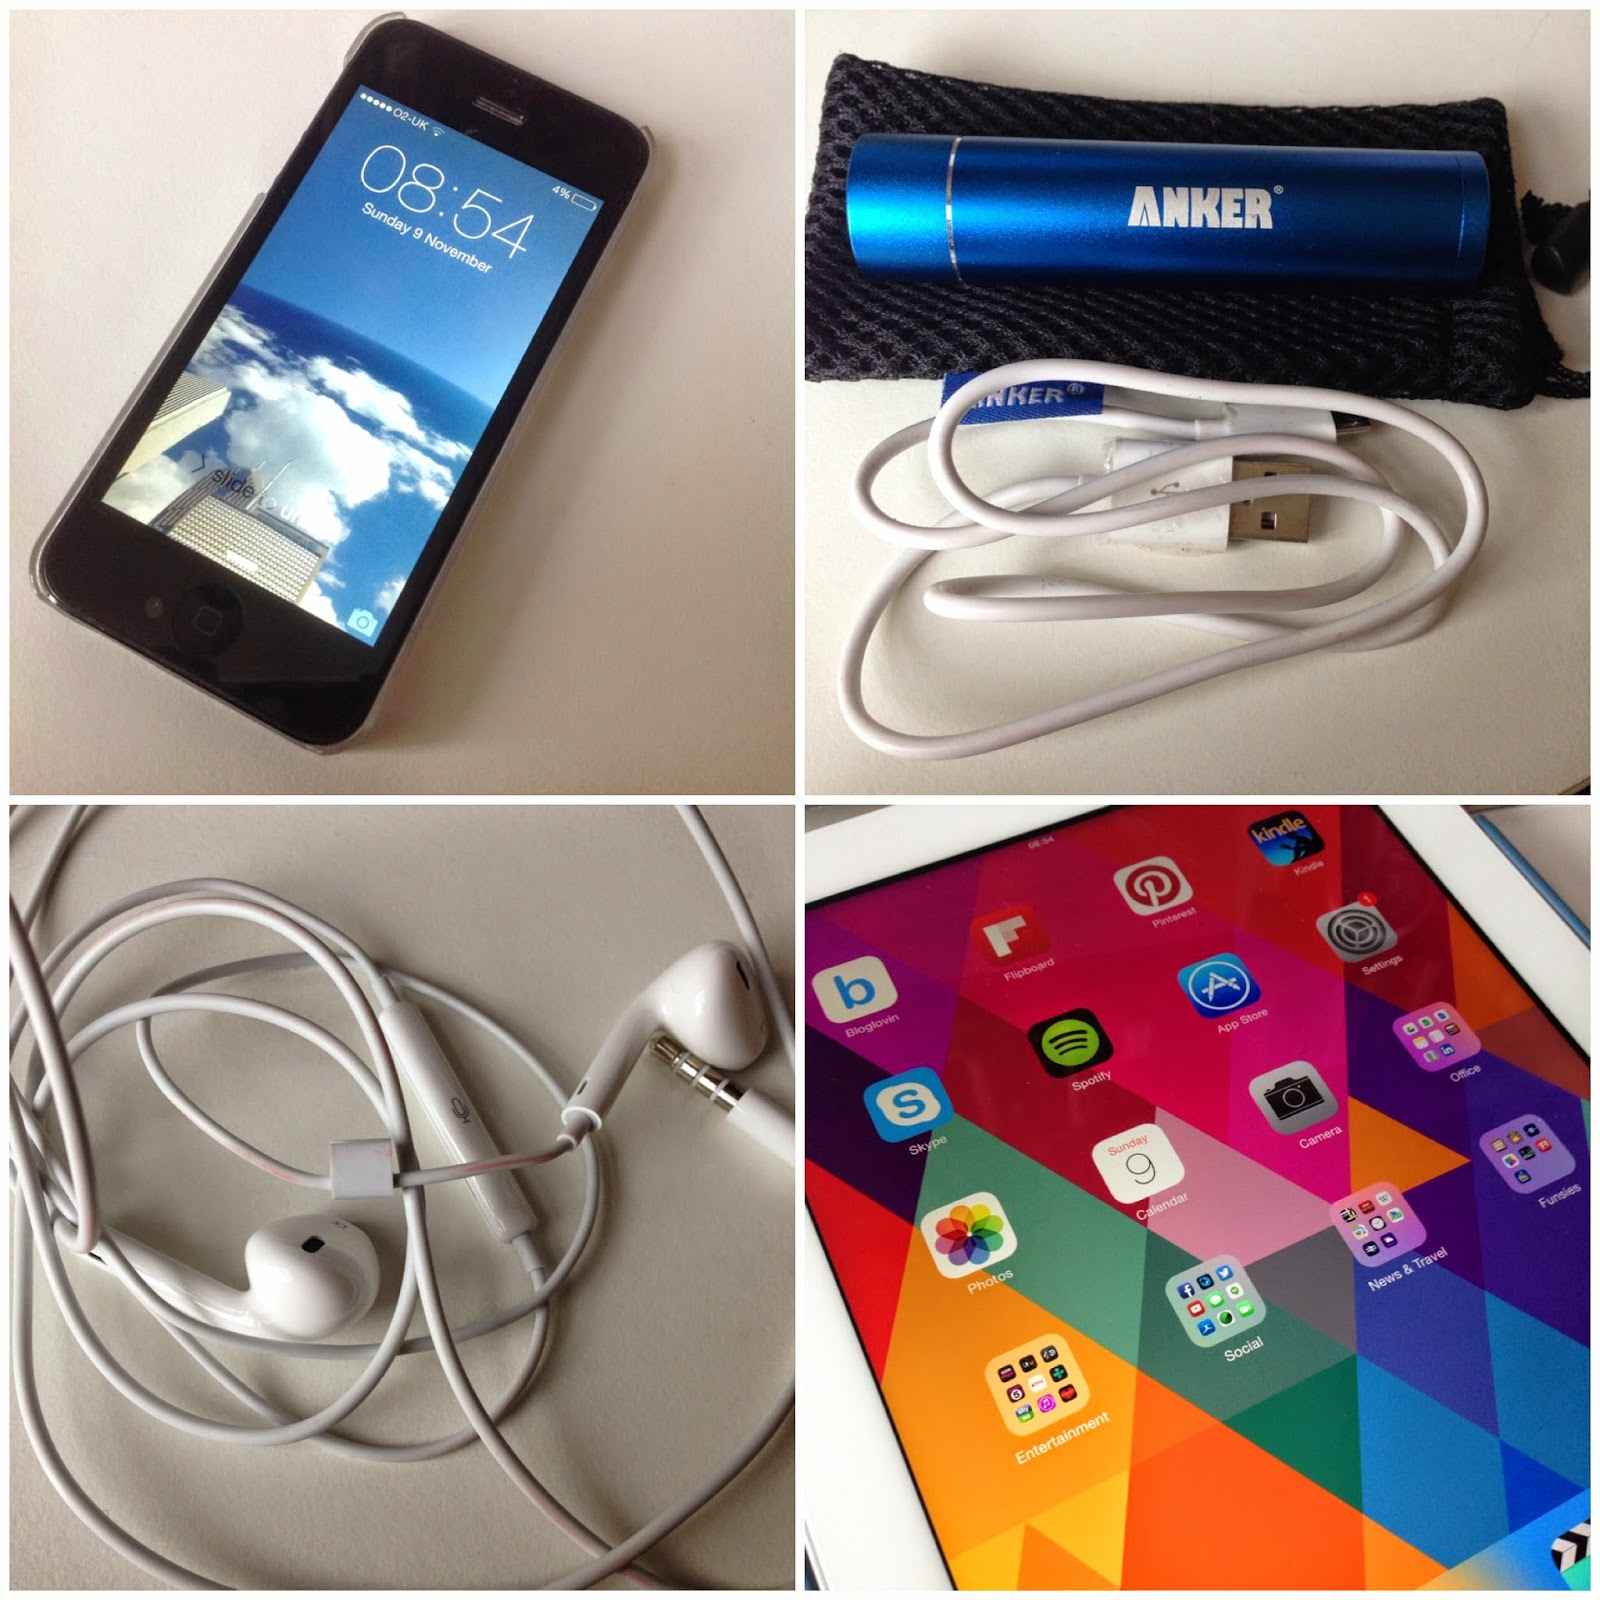 Modern Life Essentials Apple iPhone iPad Anker Charger